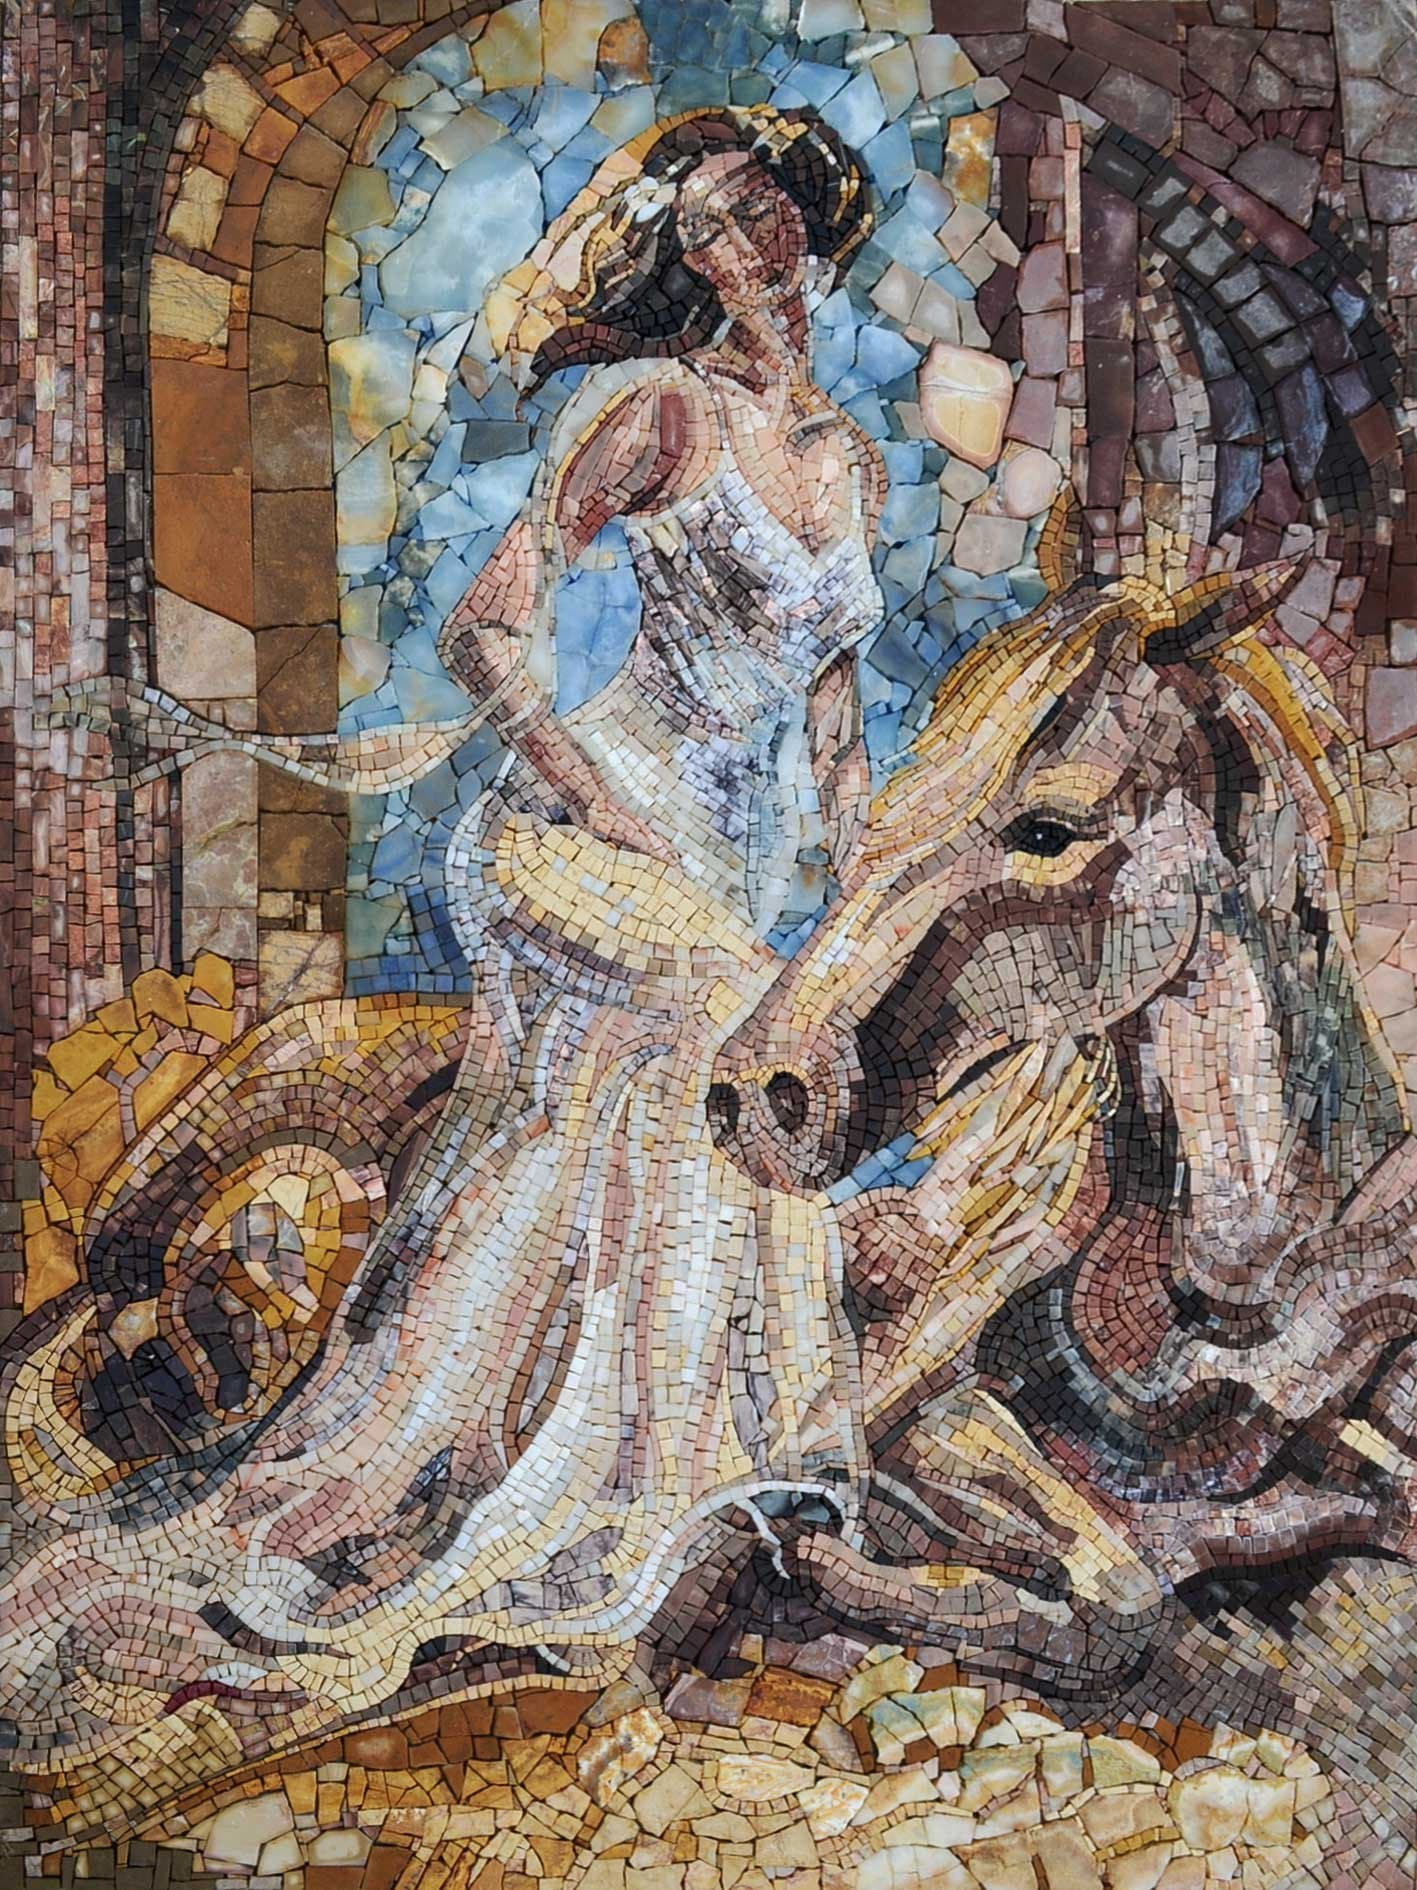 Creamy Natural Tone Lady Godiva Riding A Horse Mosaic Pic